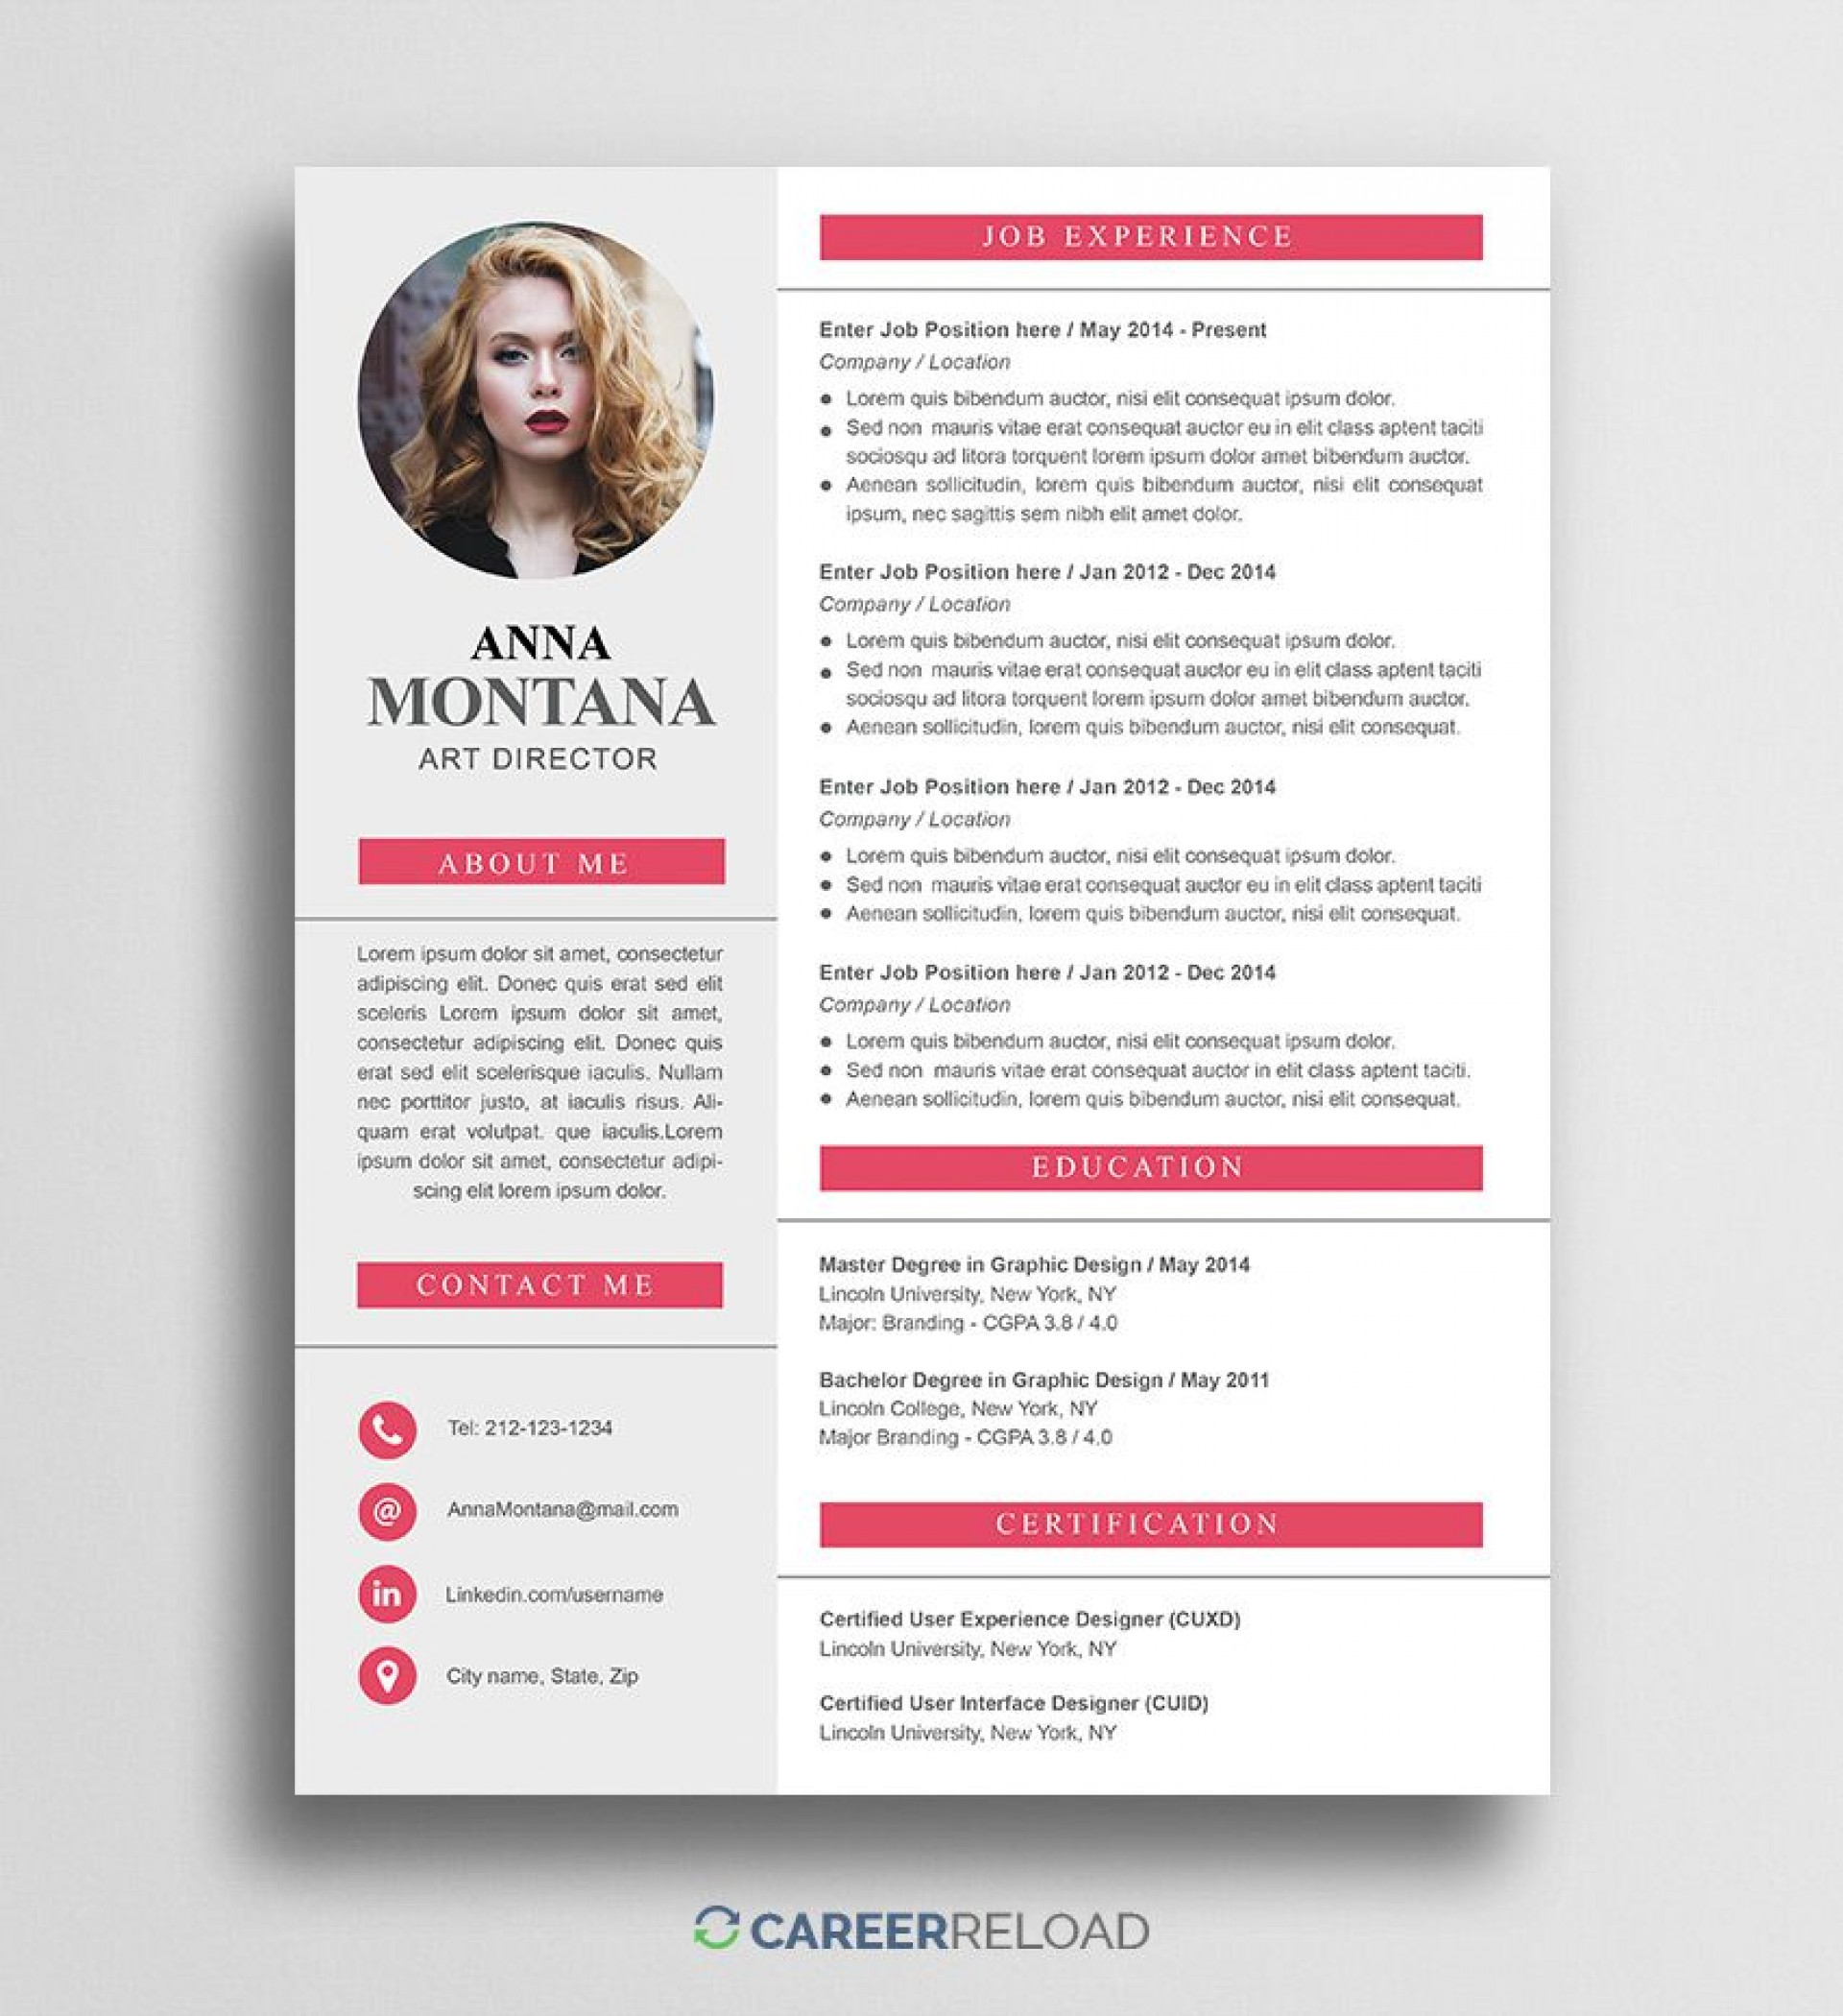 009 Incredible Photoshop Resume Template Free Download High Resolution  Creative Cv Psd1920